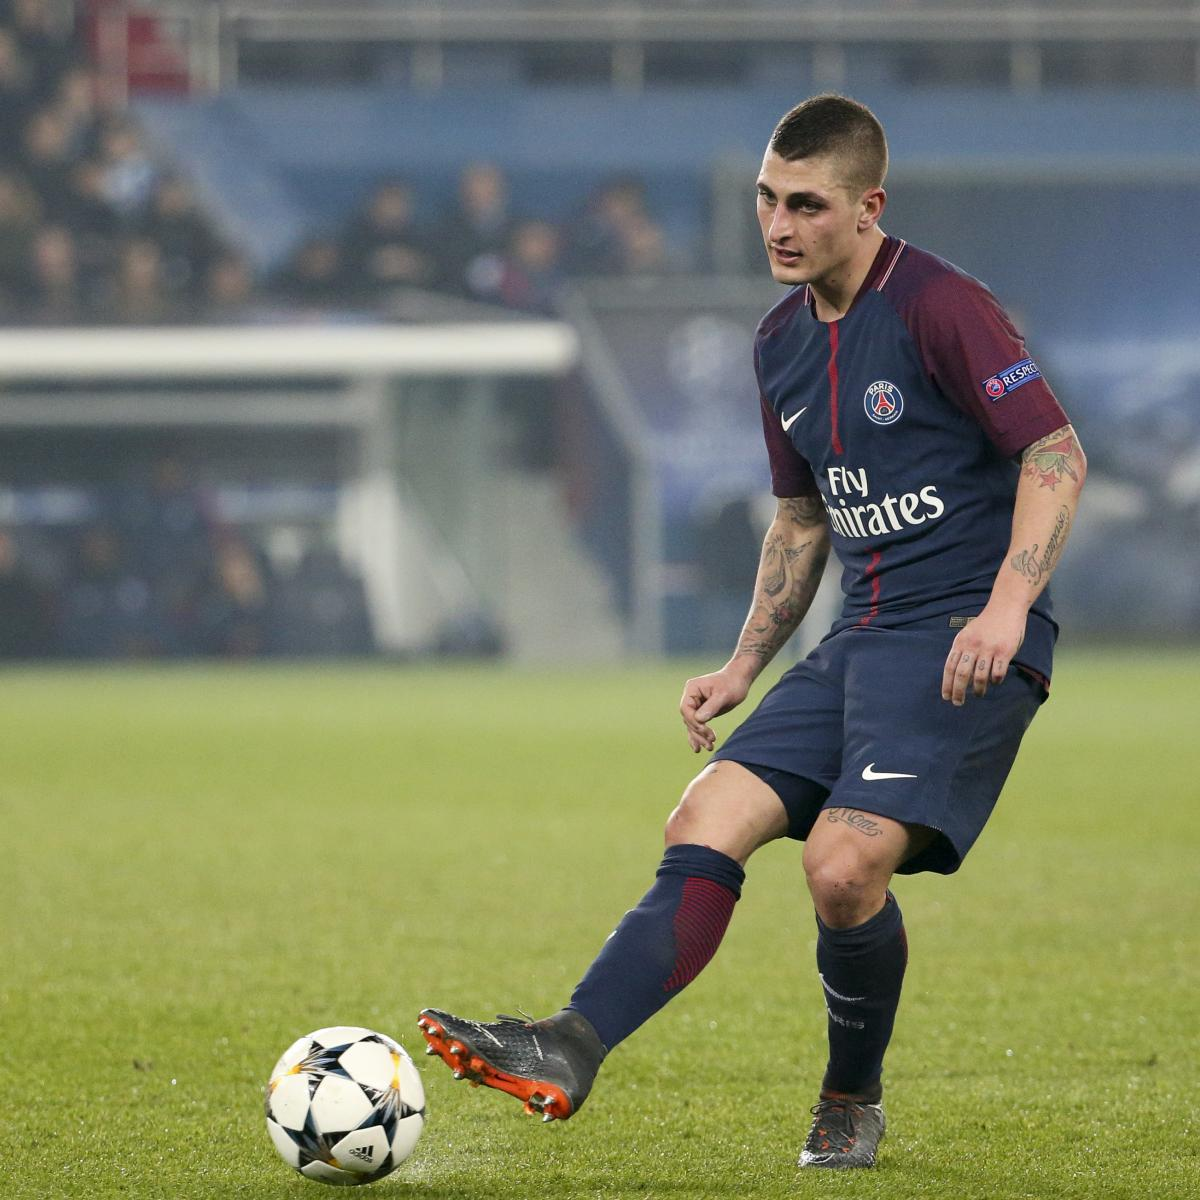 Manchester United Transfer News: Marco Verratti 'Available' in Latest Rumours